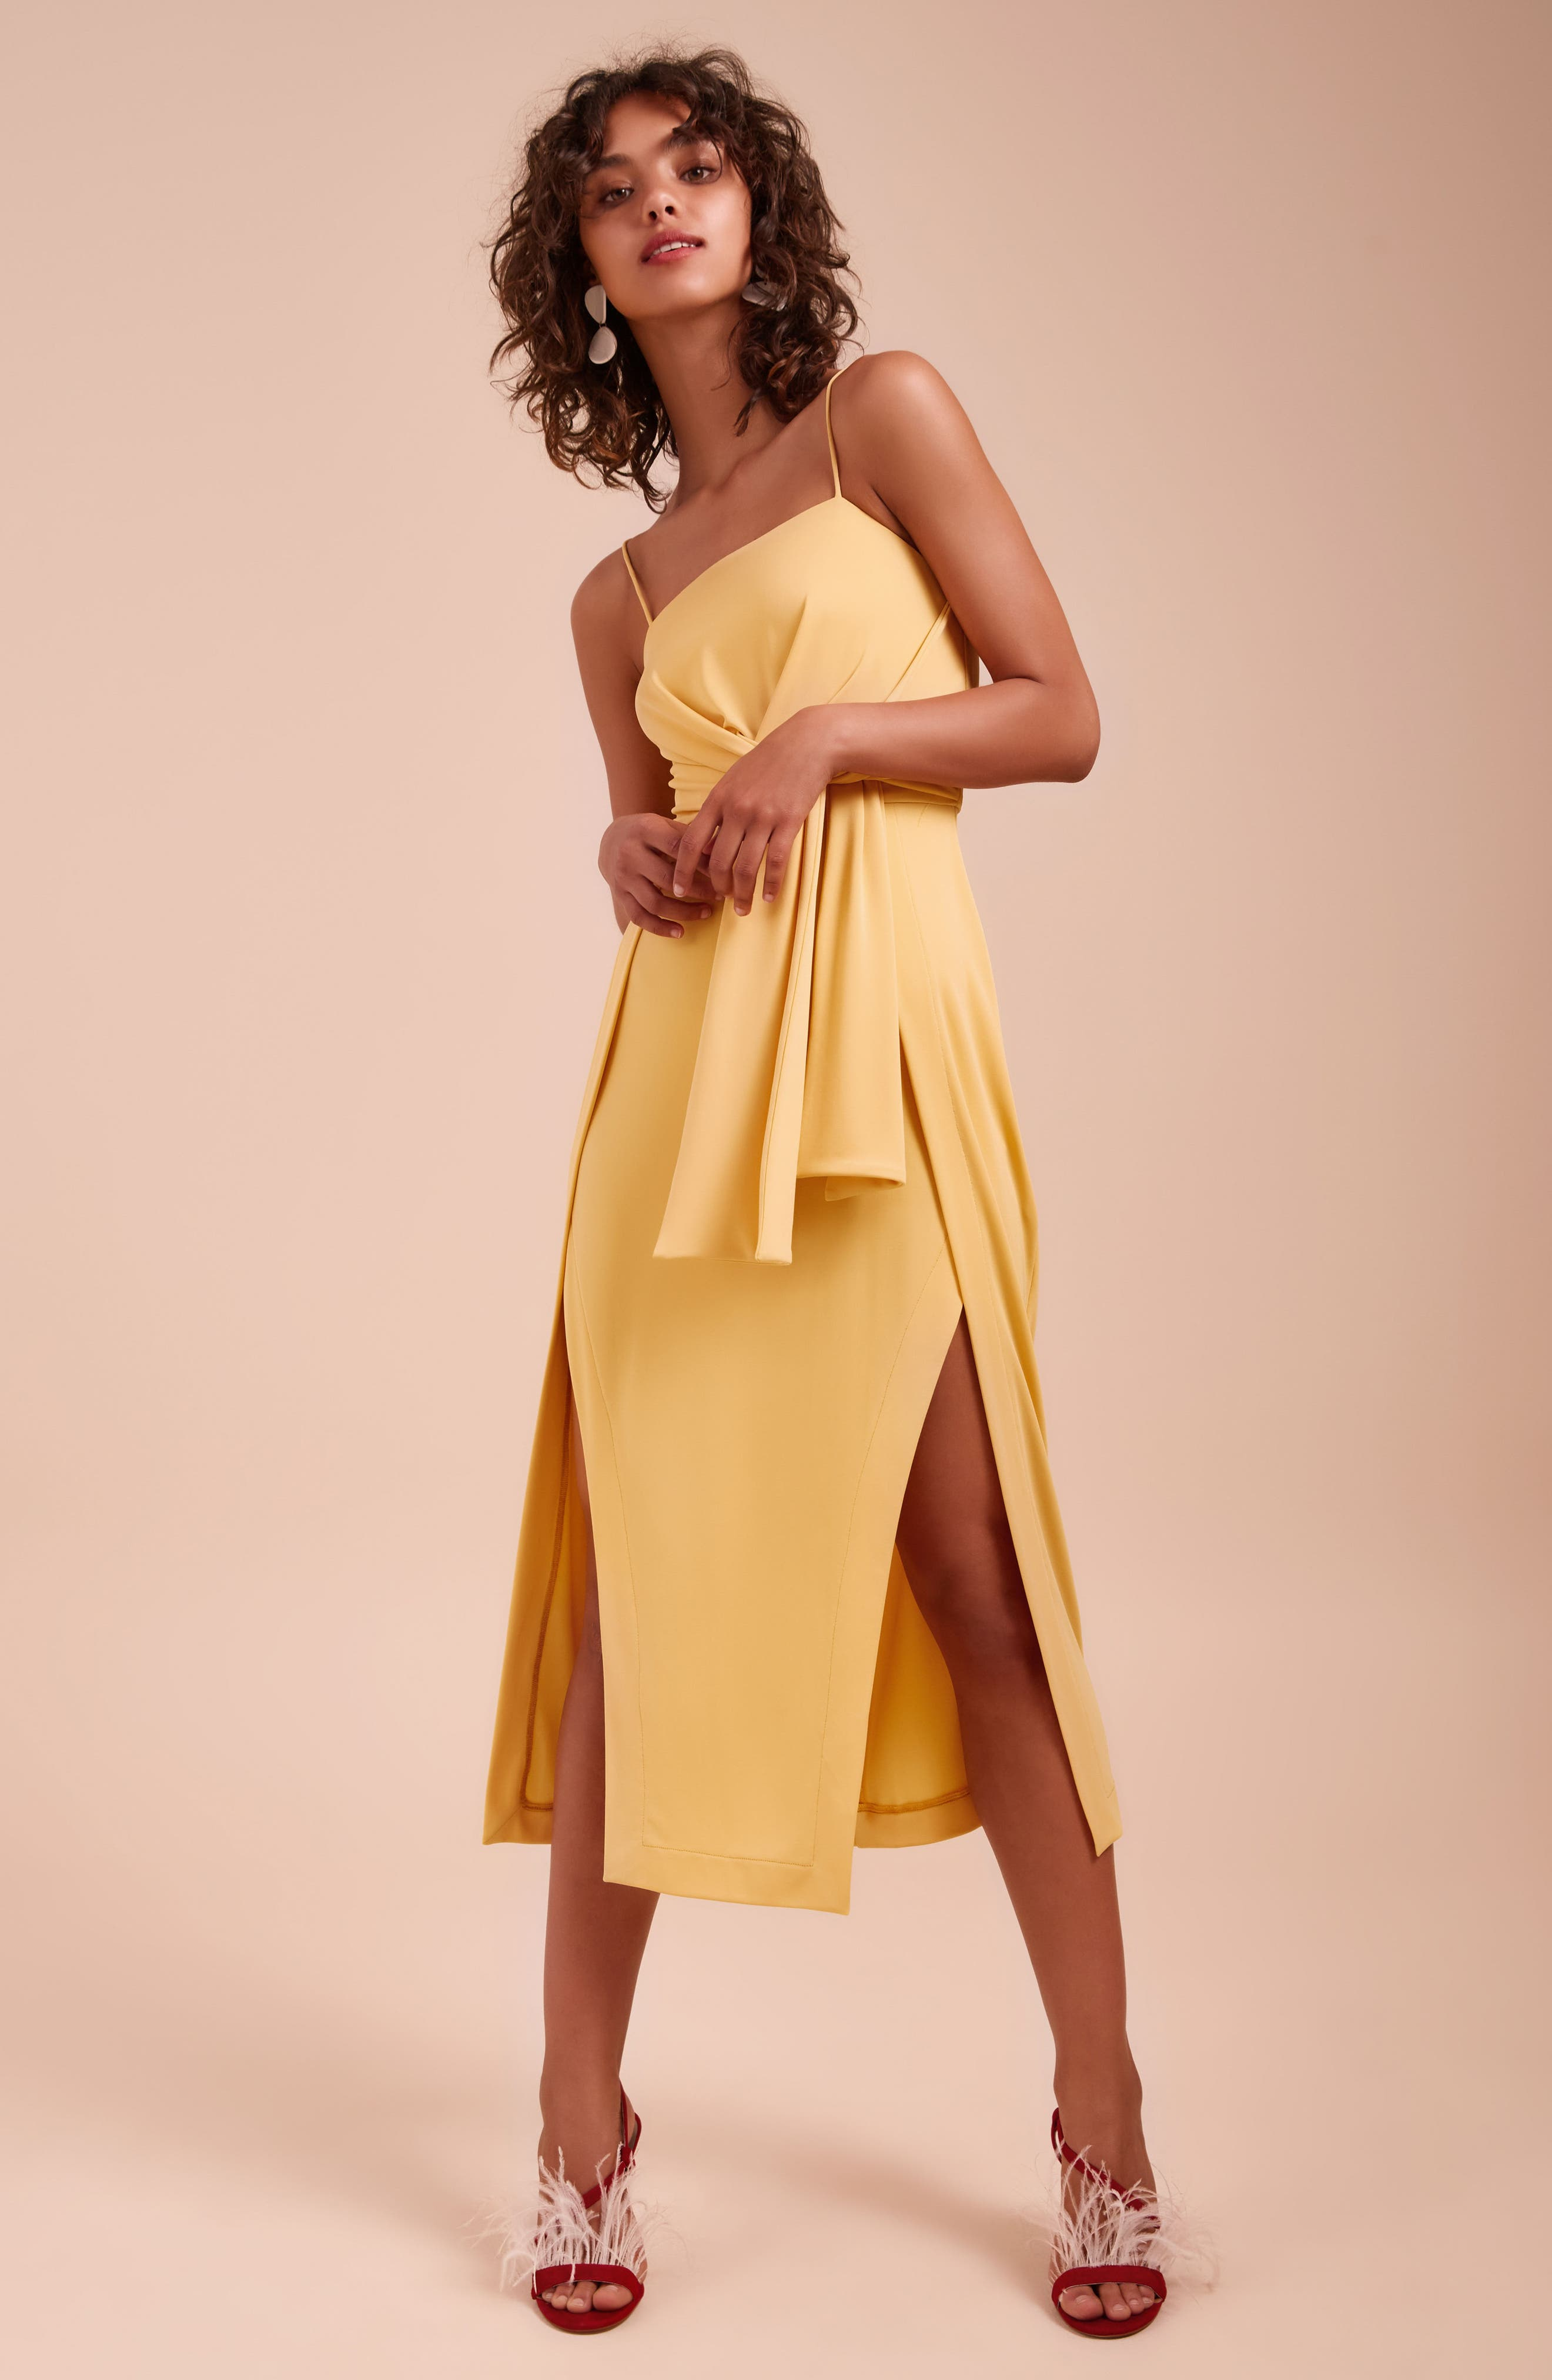 Recollect Slinky Side Tie Midi Dress,                             Alternate thumbnail 7, color,                             740